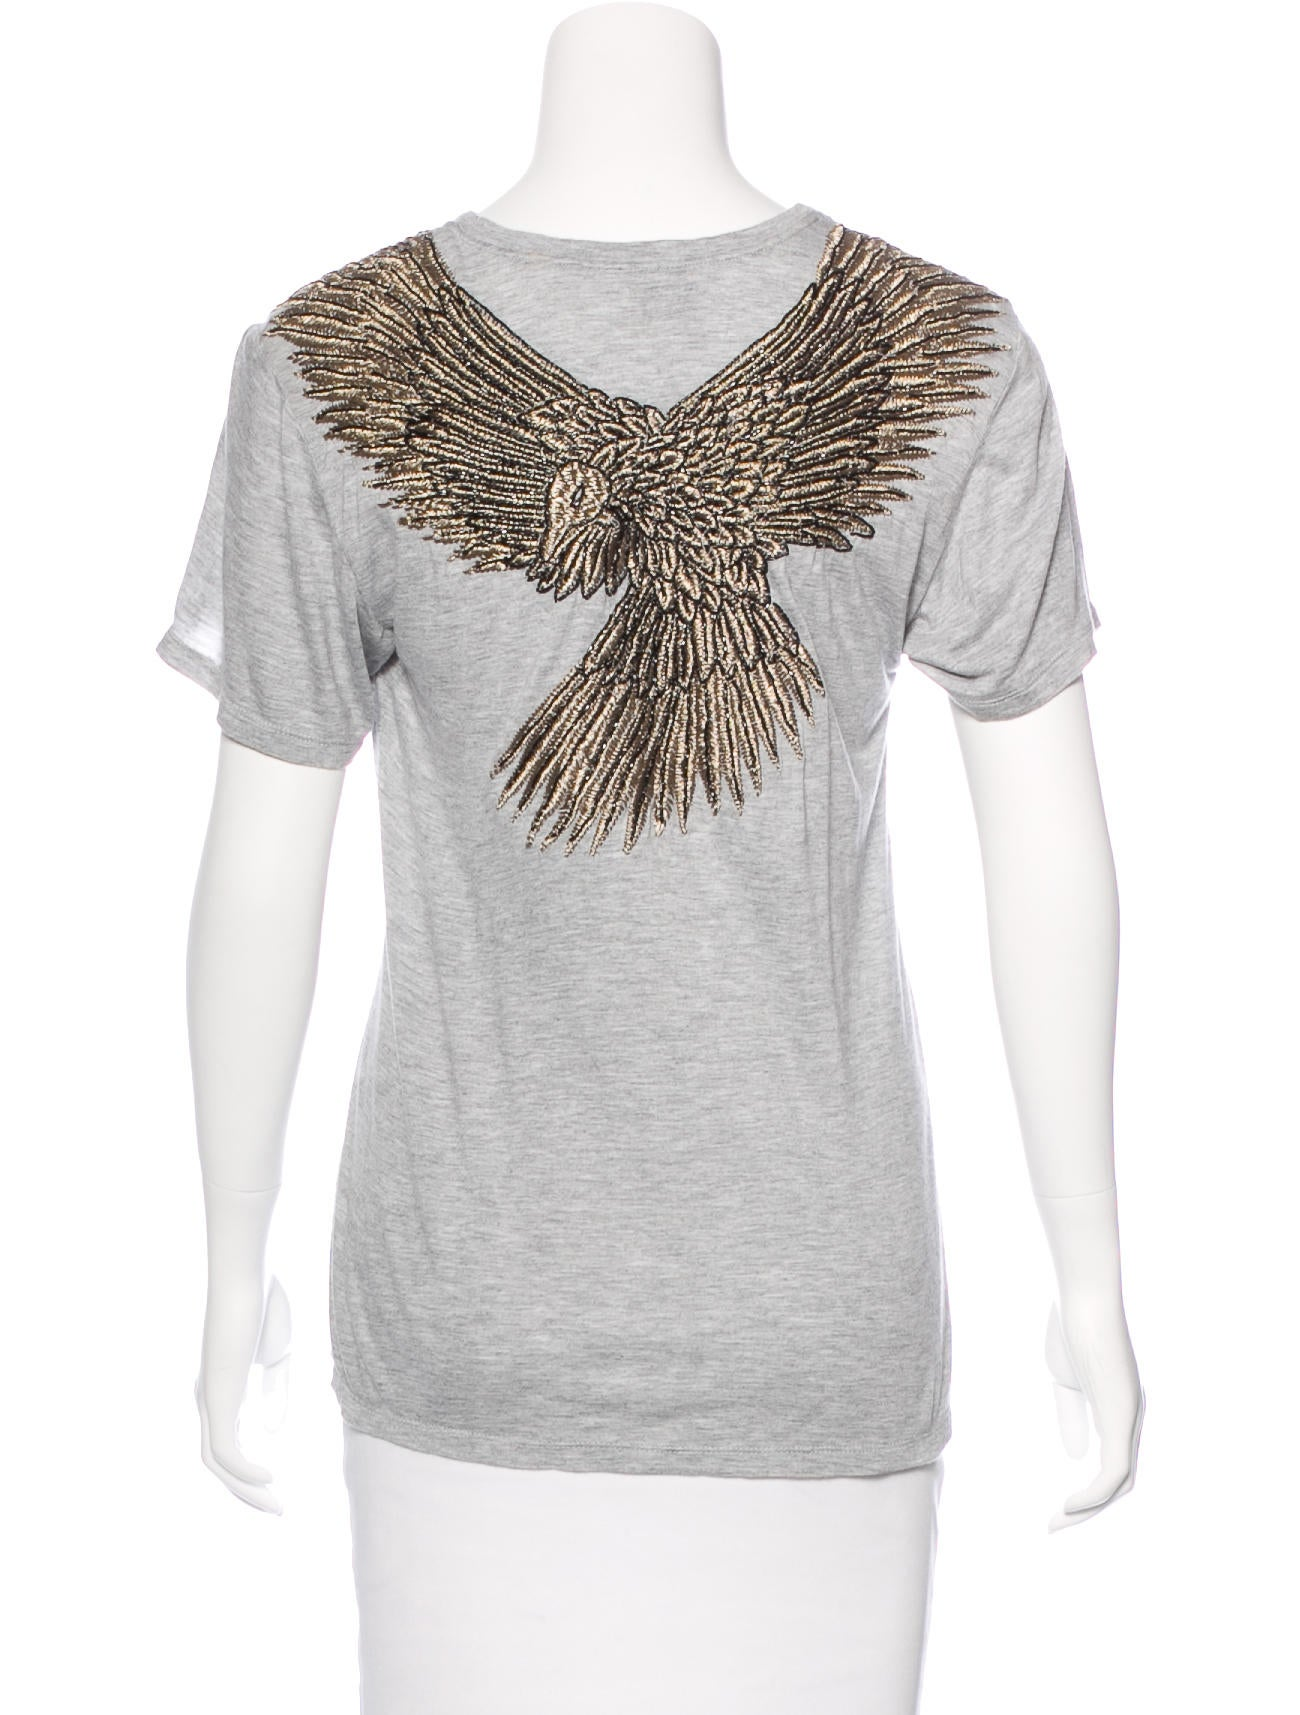 haute hippie embroidered eagle t shirt clothing. Black Bedroom Furniture Sets. Home Design Ideas